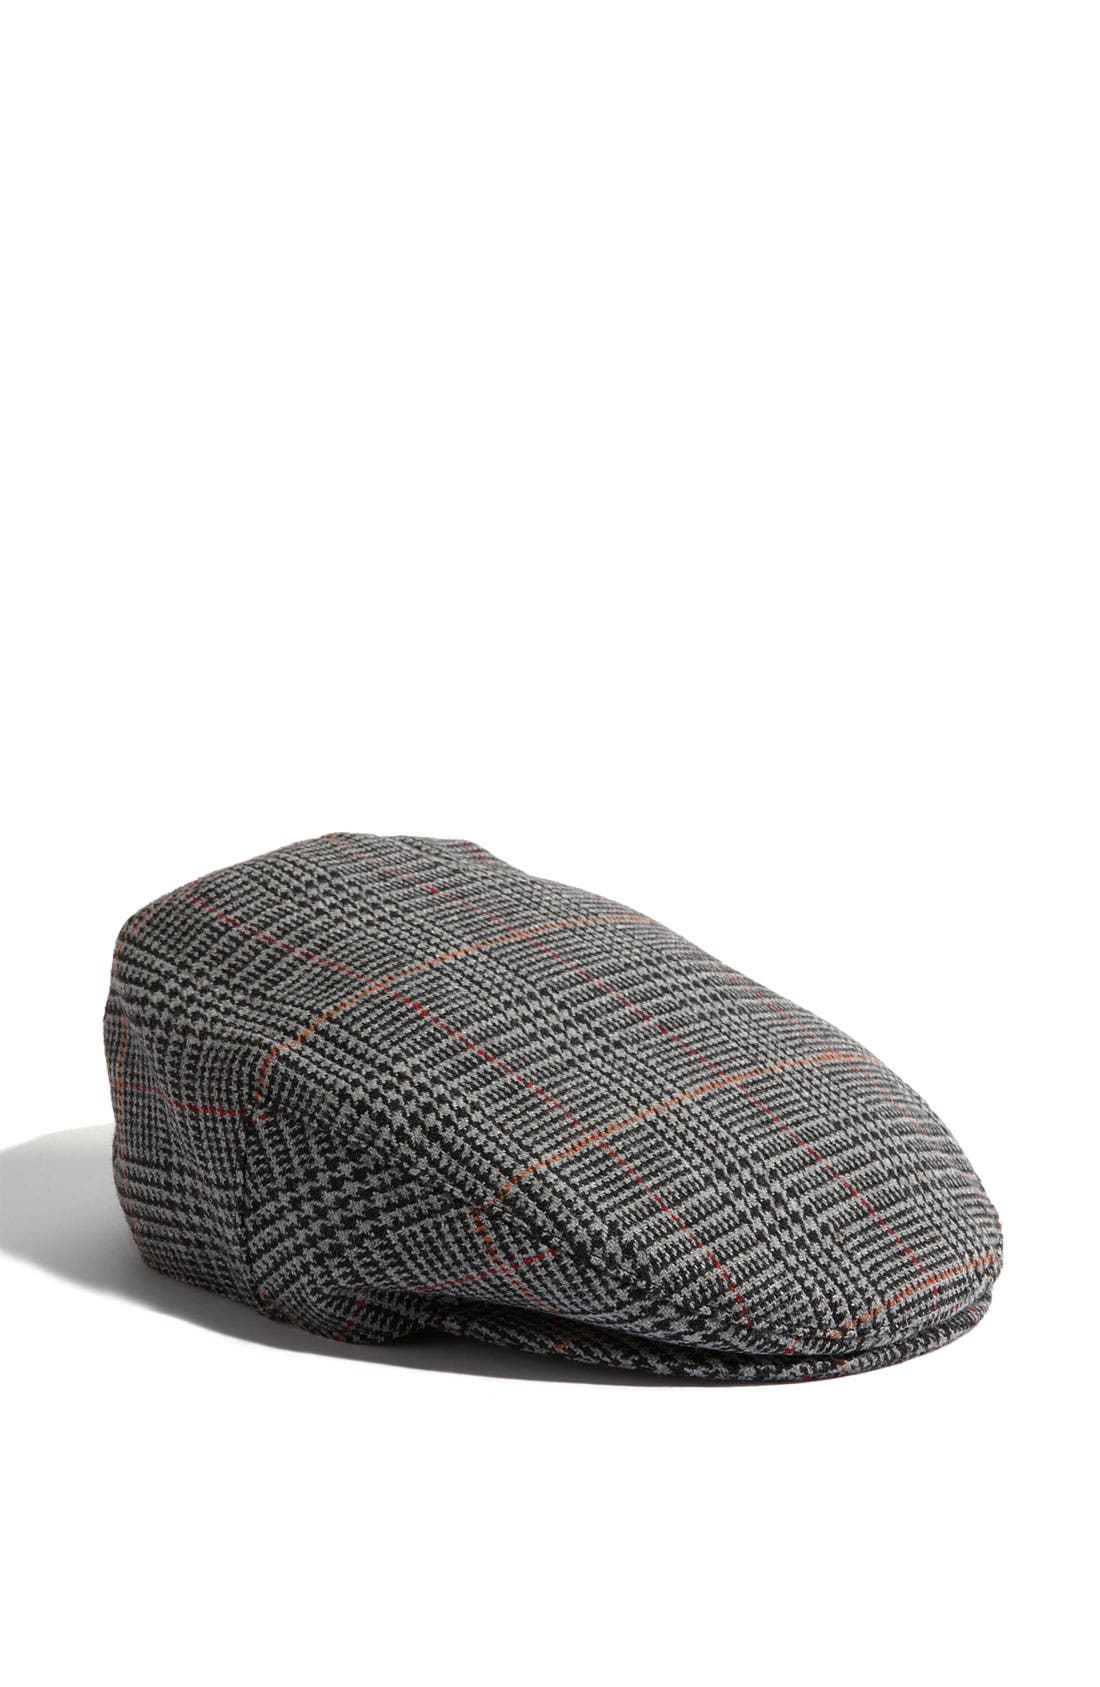 Alternate Image 1 Selected - Tarnish Plaid Cap